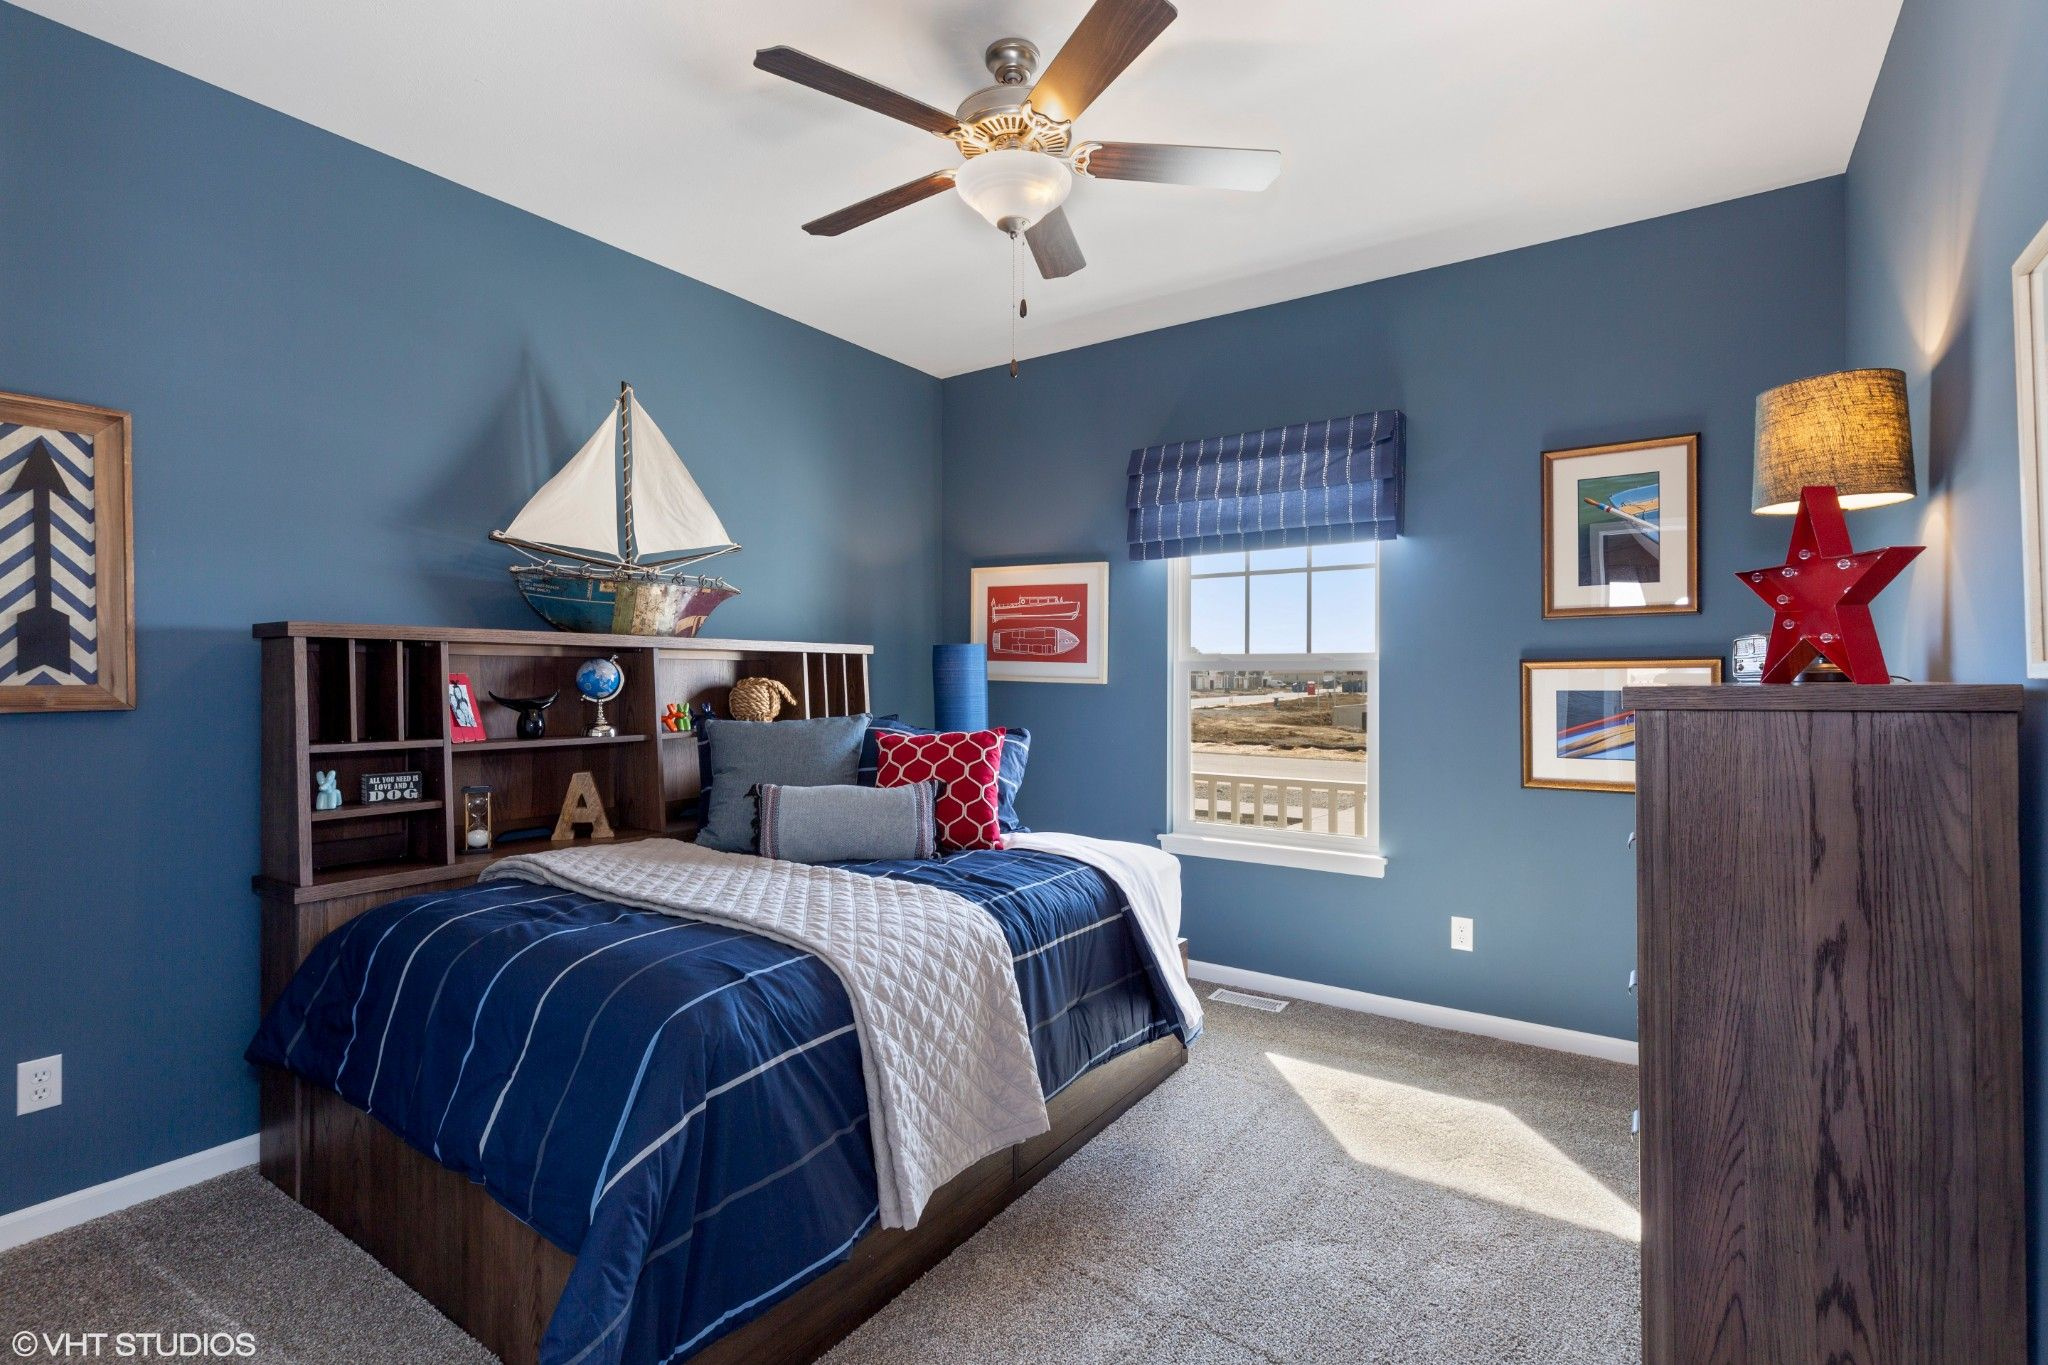 Bedroom featured in the Heartland By Olthof Homes in Gary, IN